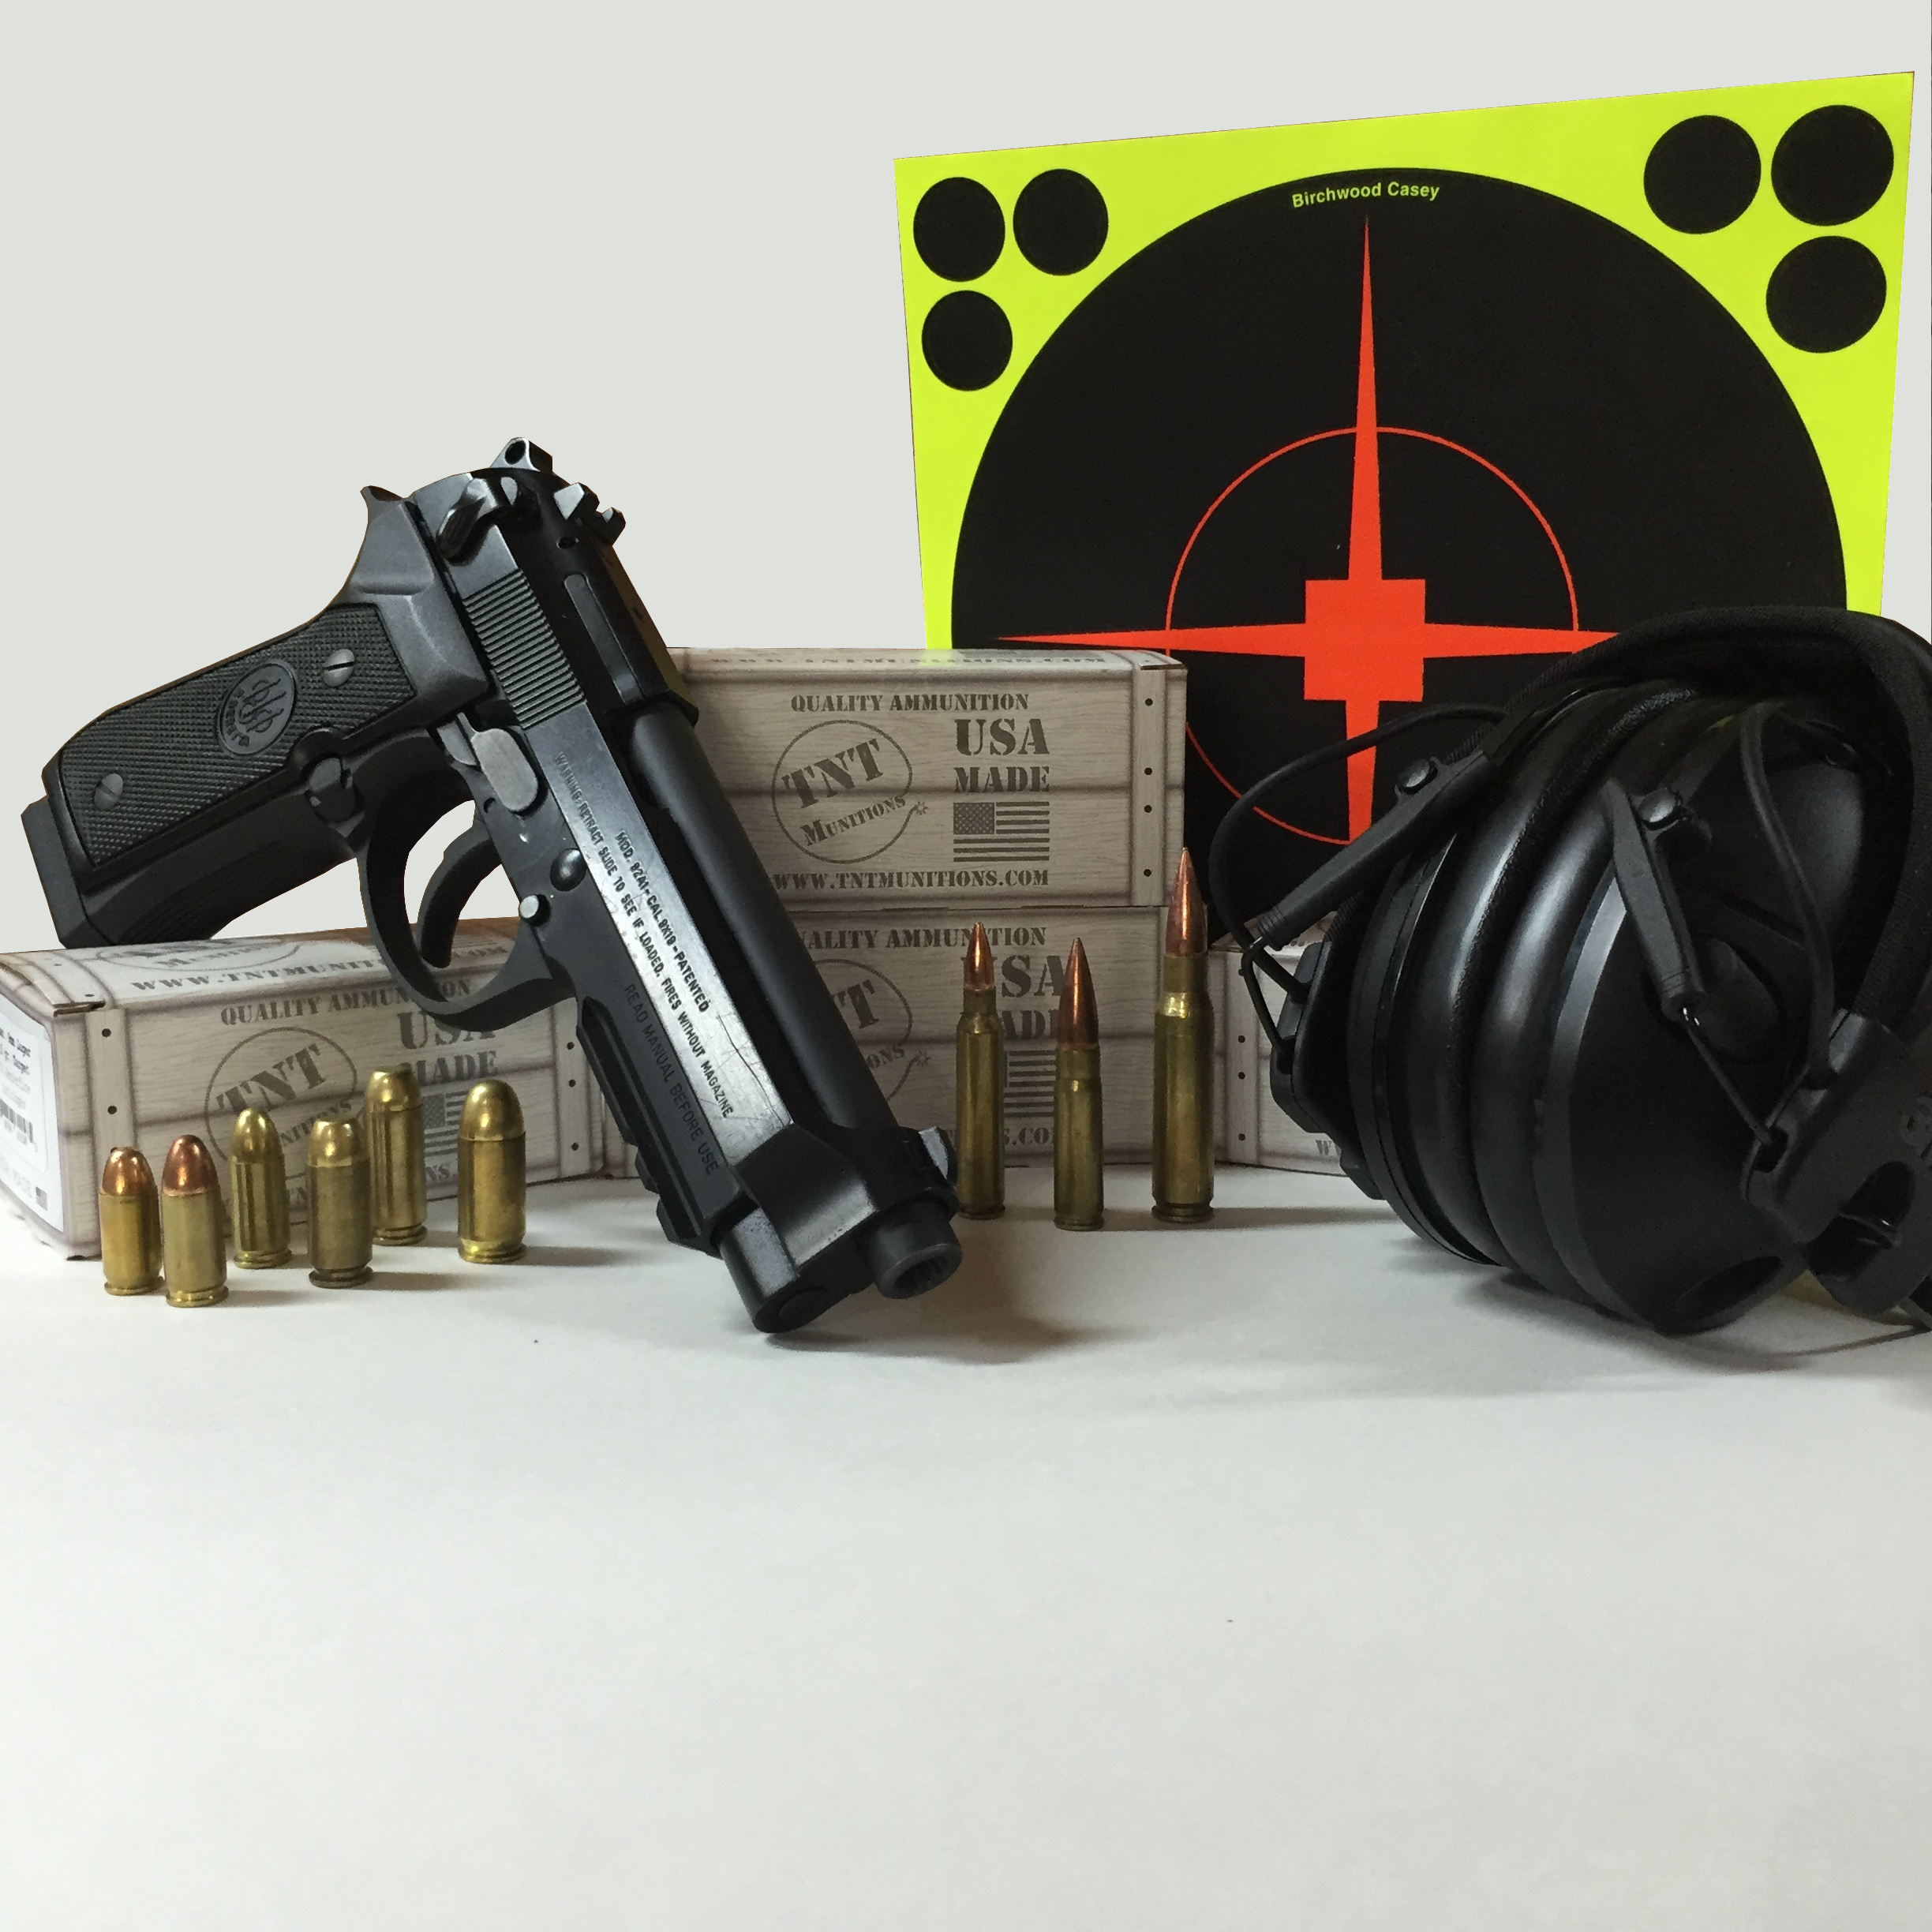 Enter for a chance to win a box of ammo and have some range time on us.